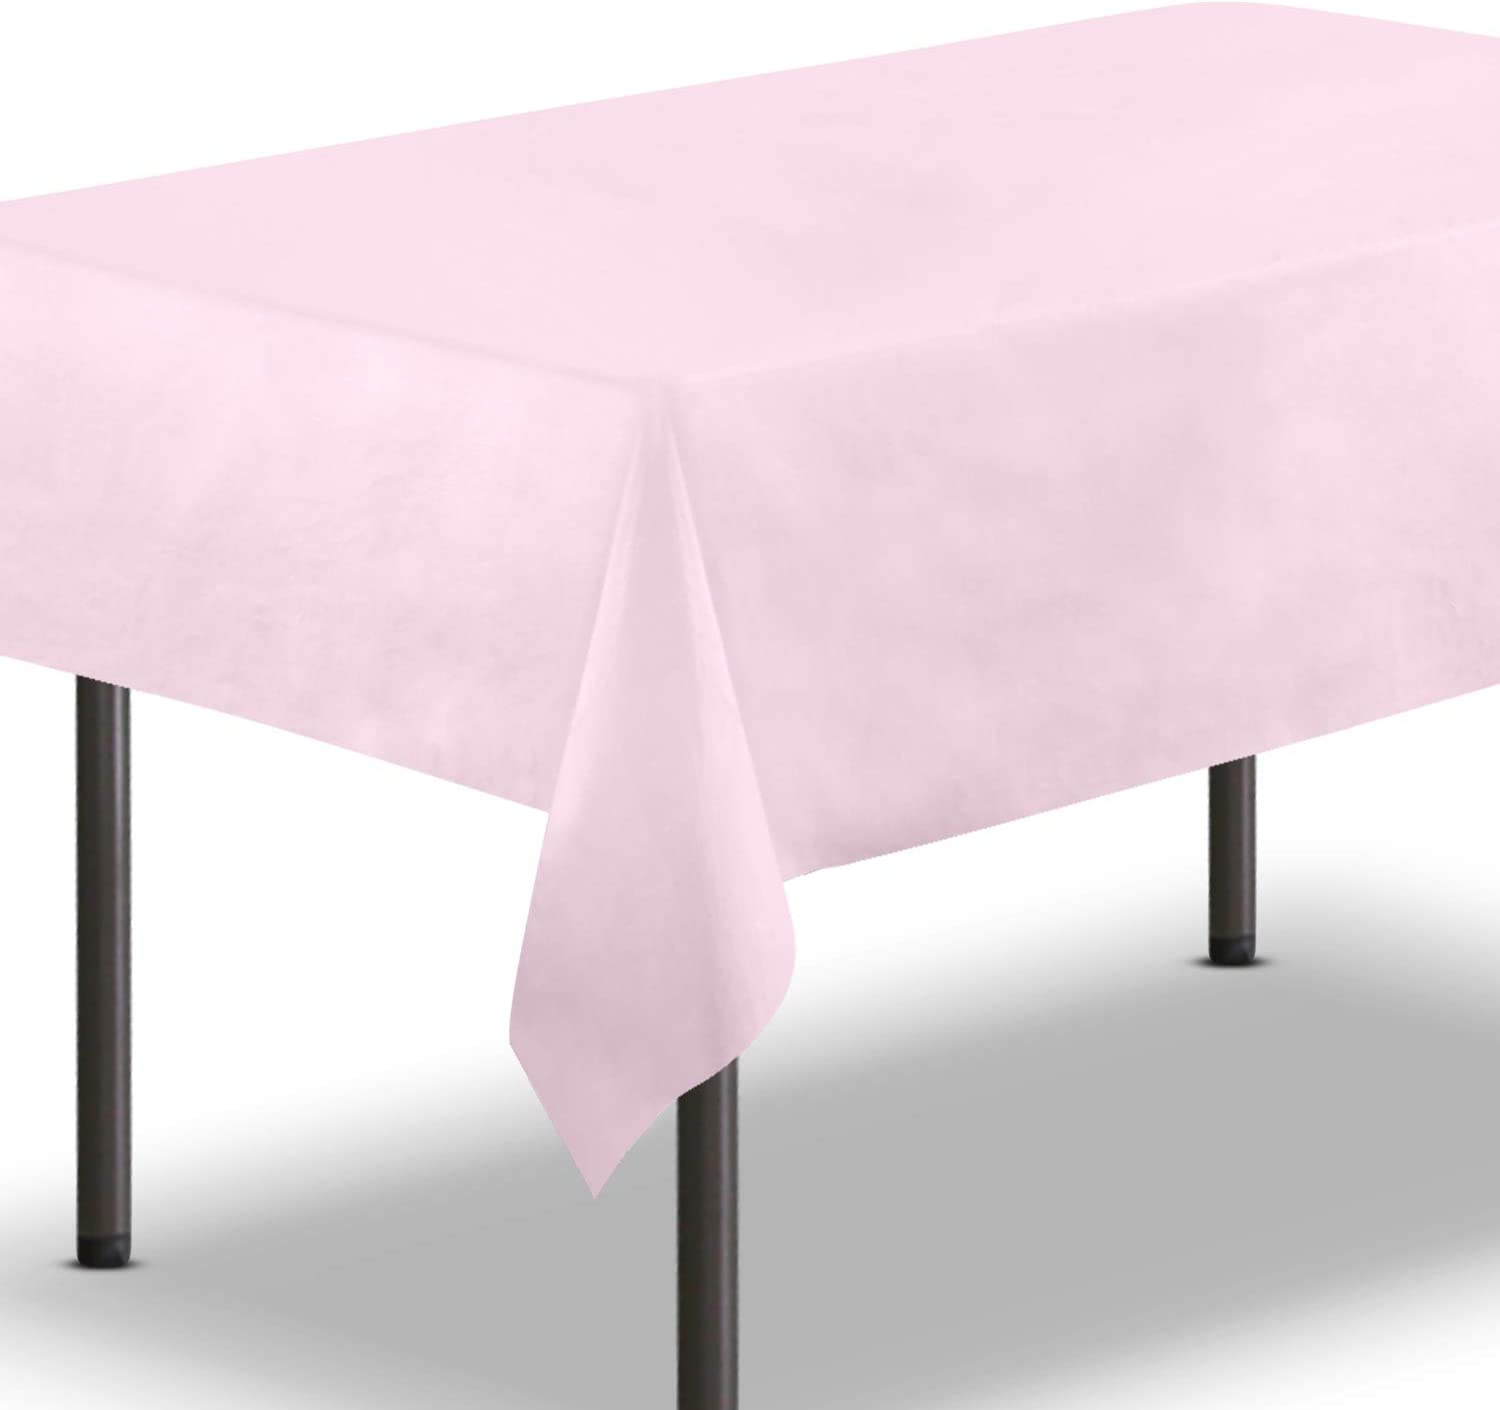 FMP Brands [10 Pack] Pink Plastic Tablecloth 54 x 108 Inch - Rectangle Table Cloth Reusable Cover/Disposable Tablecloths, Party Decoration Birthday Supplies Outdoor Picnic Camping Baby Shower Wedding